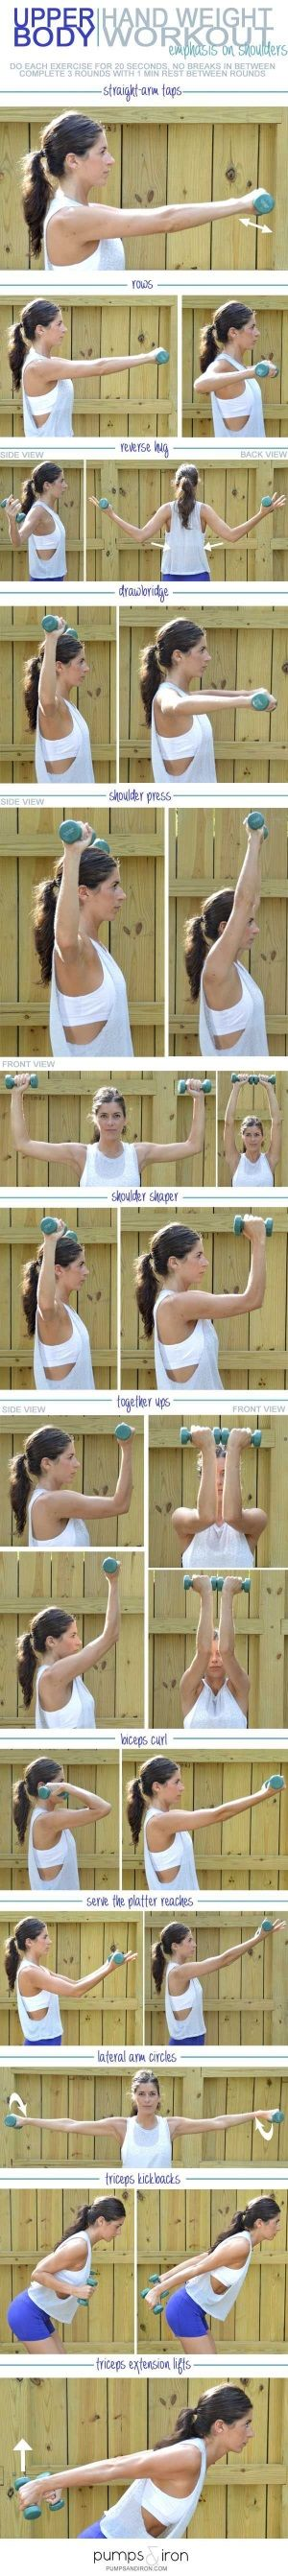 1000 Images About Pool Workouts On Pinterest Fitness Gloves Swim And Water Aerobic Exercises